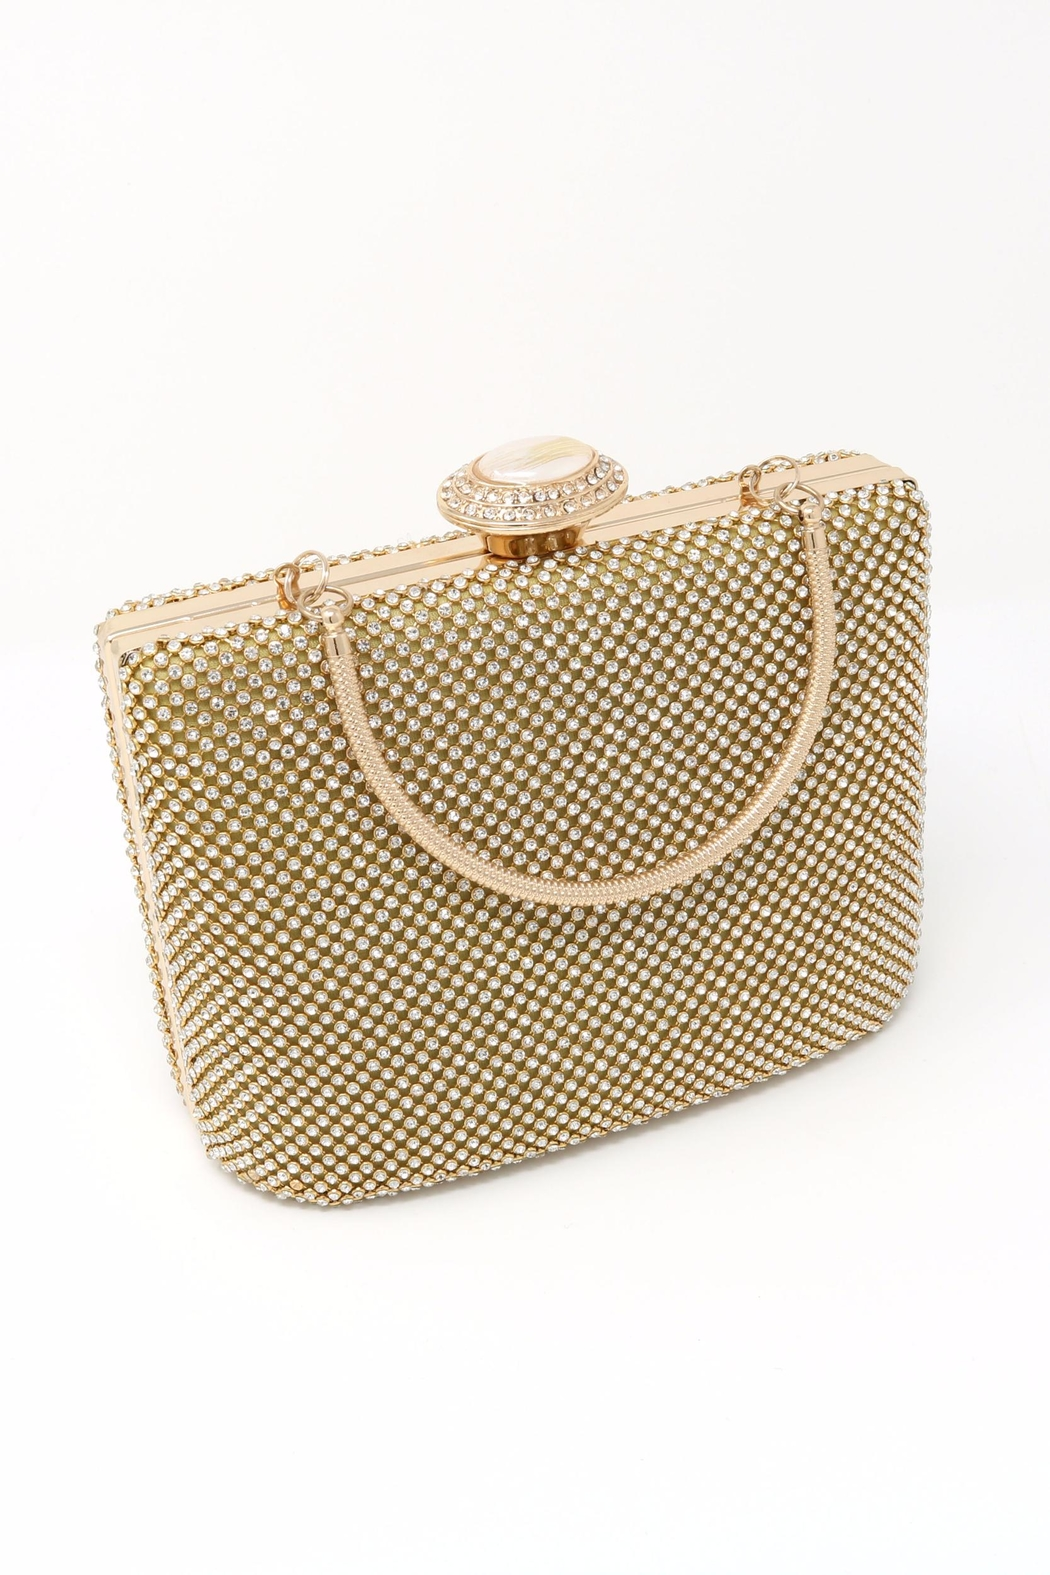 Nadya's Closet Stone Accent Evening Clutch - Front Full Image